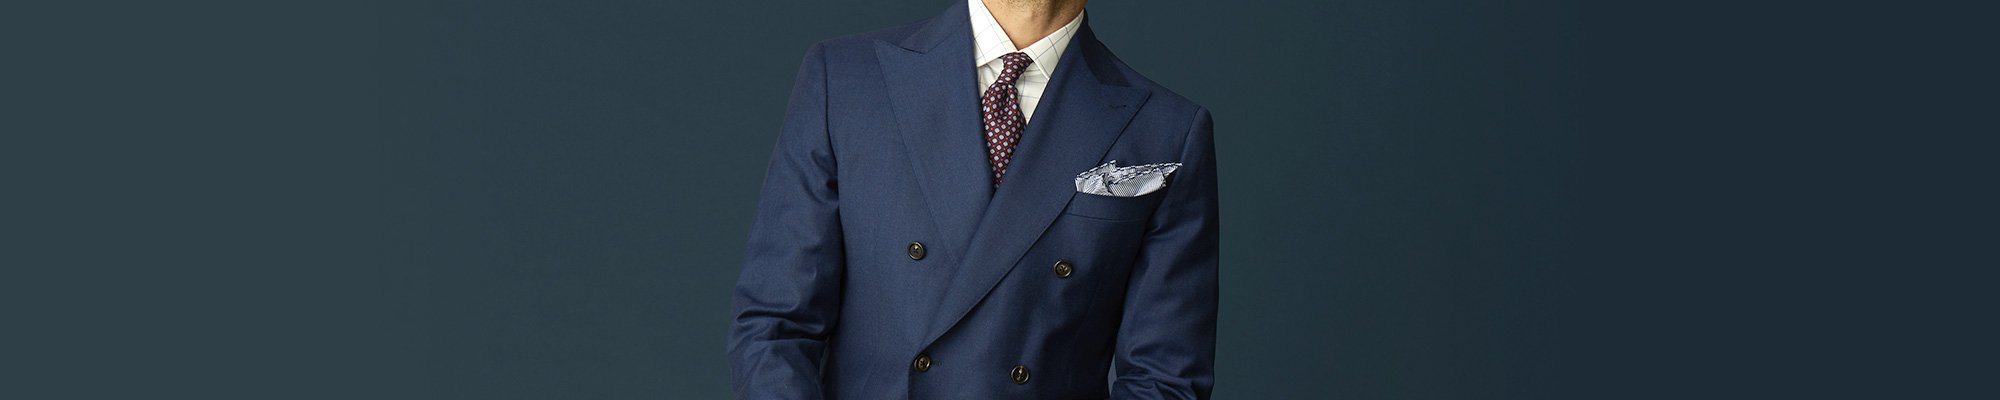 Men's Made To Measure Suits